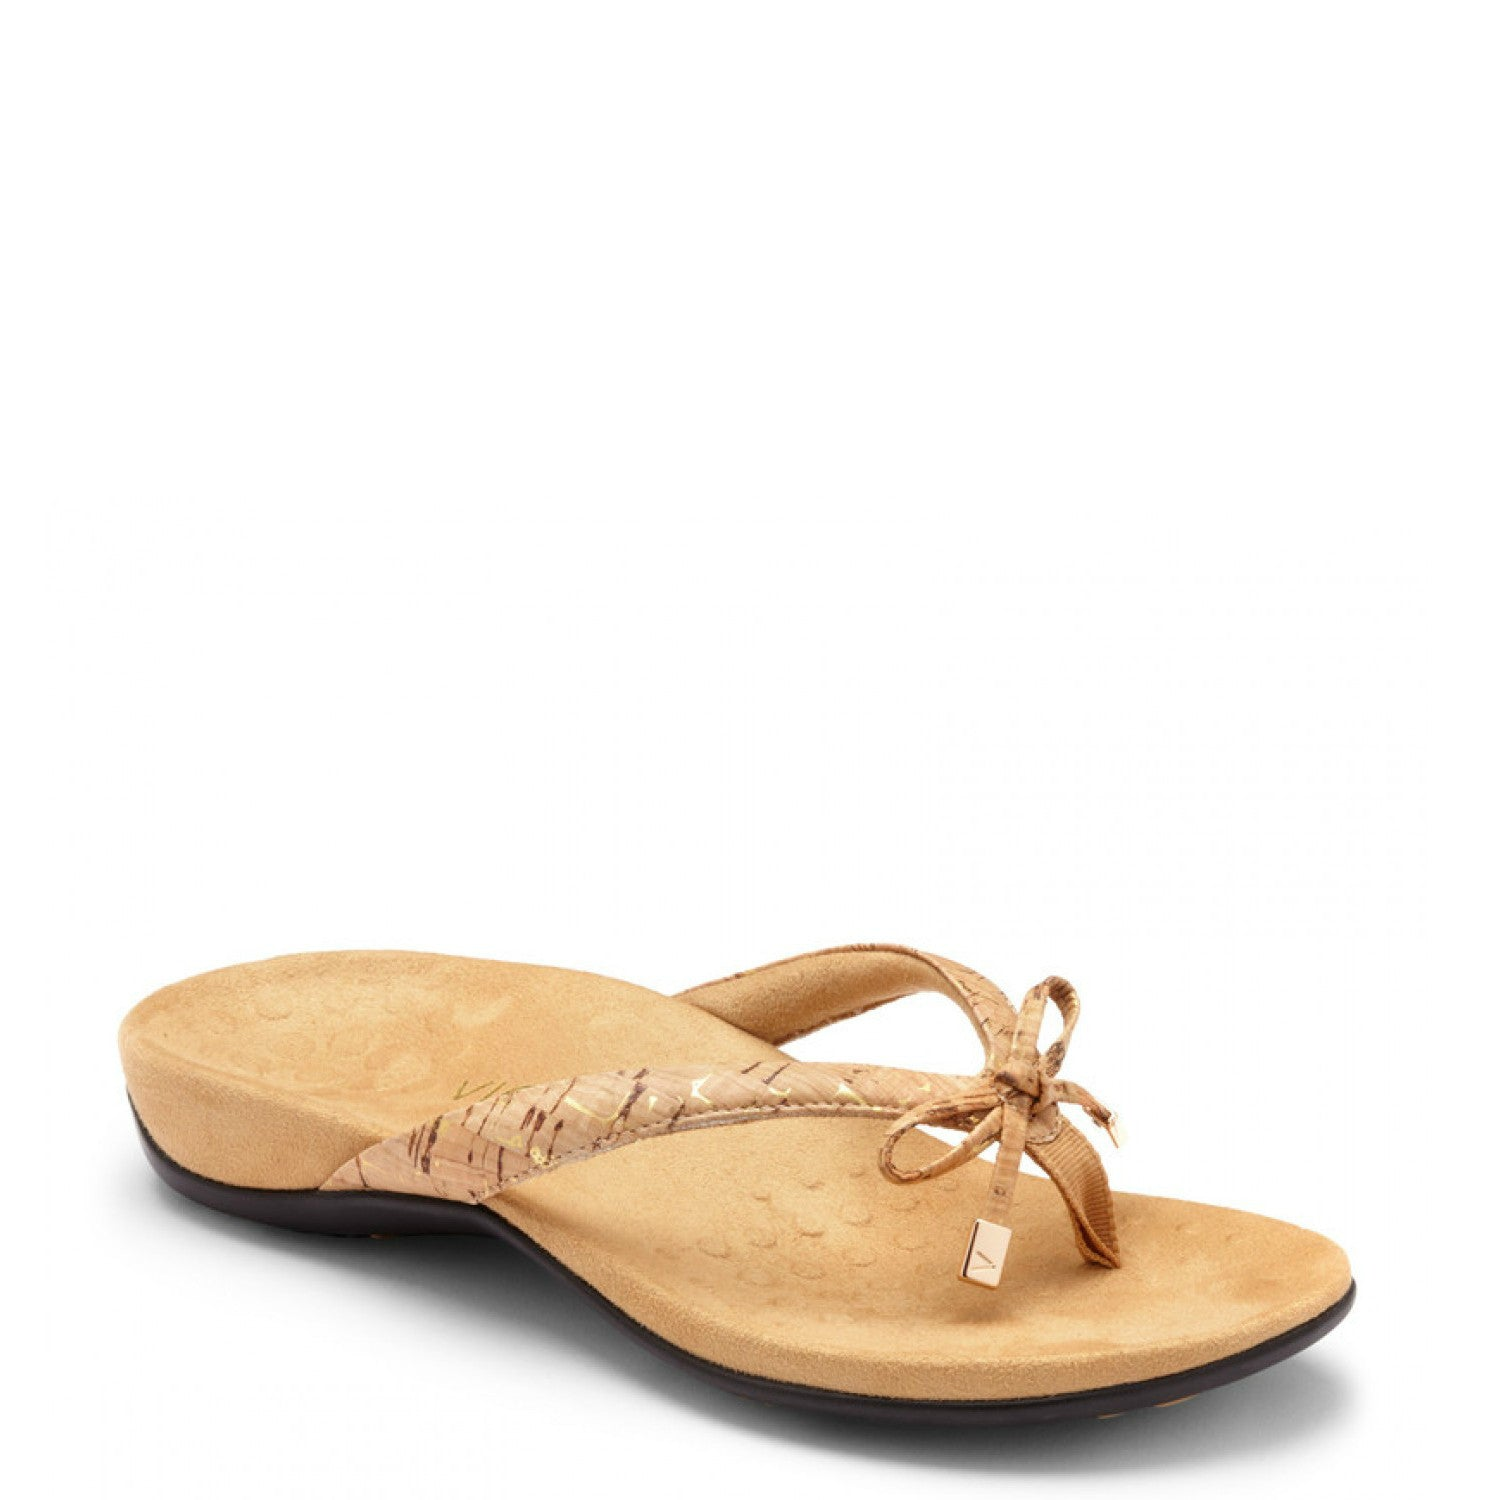 073e571d9232 Vionic Women s Bella II Toe-Post Sandal - Gold Cork - ShoeShackOnline